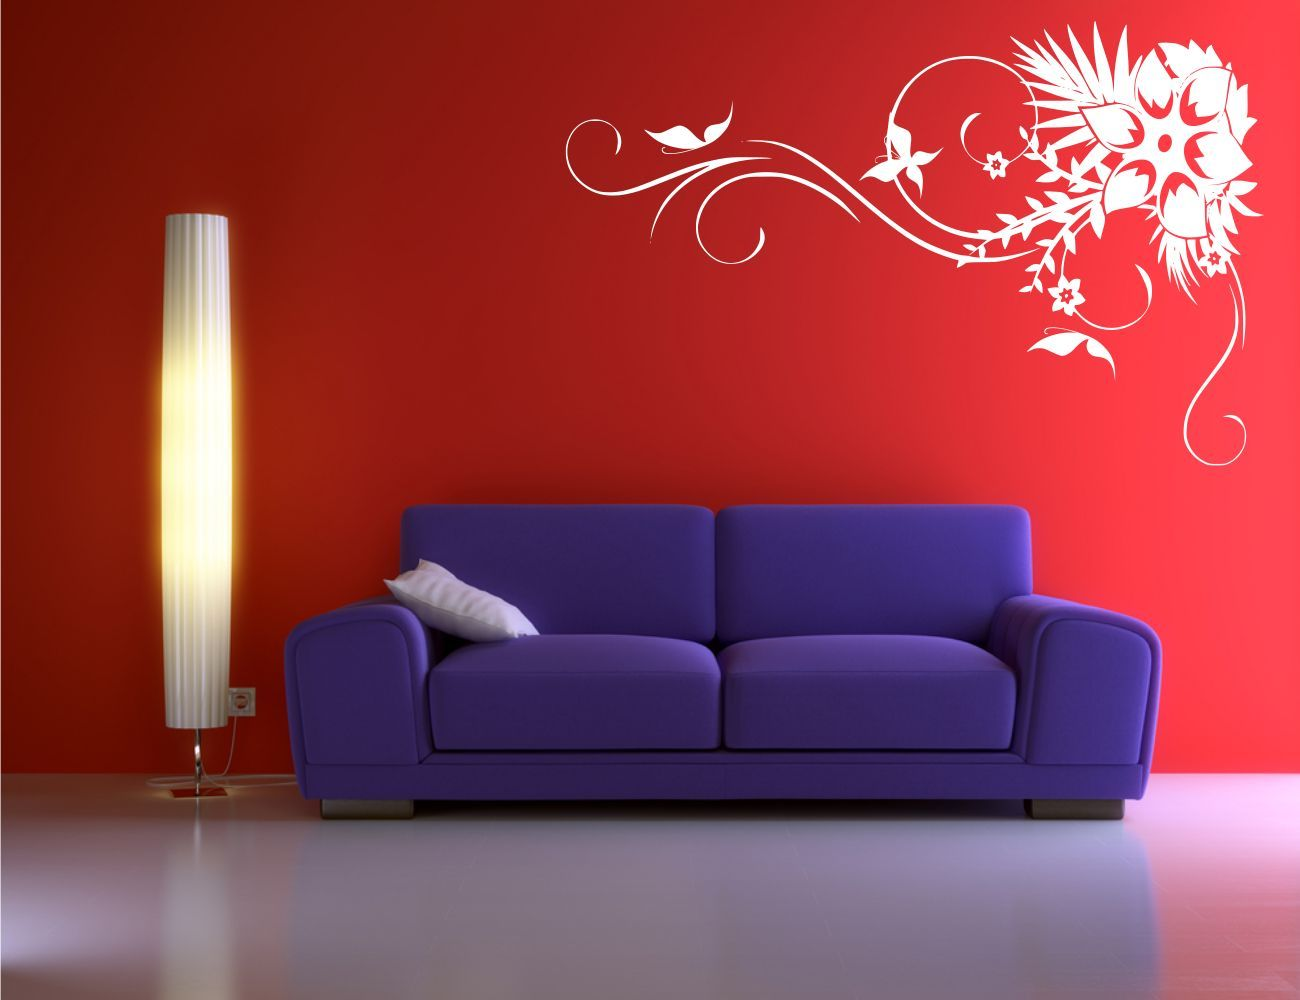 CORNER FLOWER BUTTERFLY VINE ART WALL STICKER DECAL MURAL STENCIL